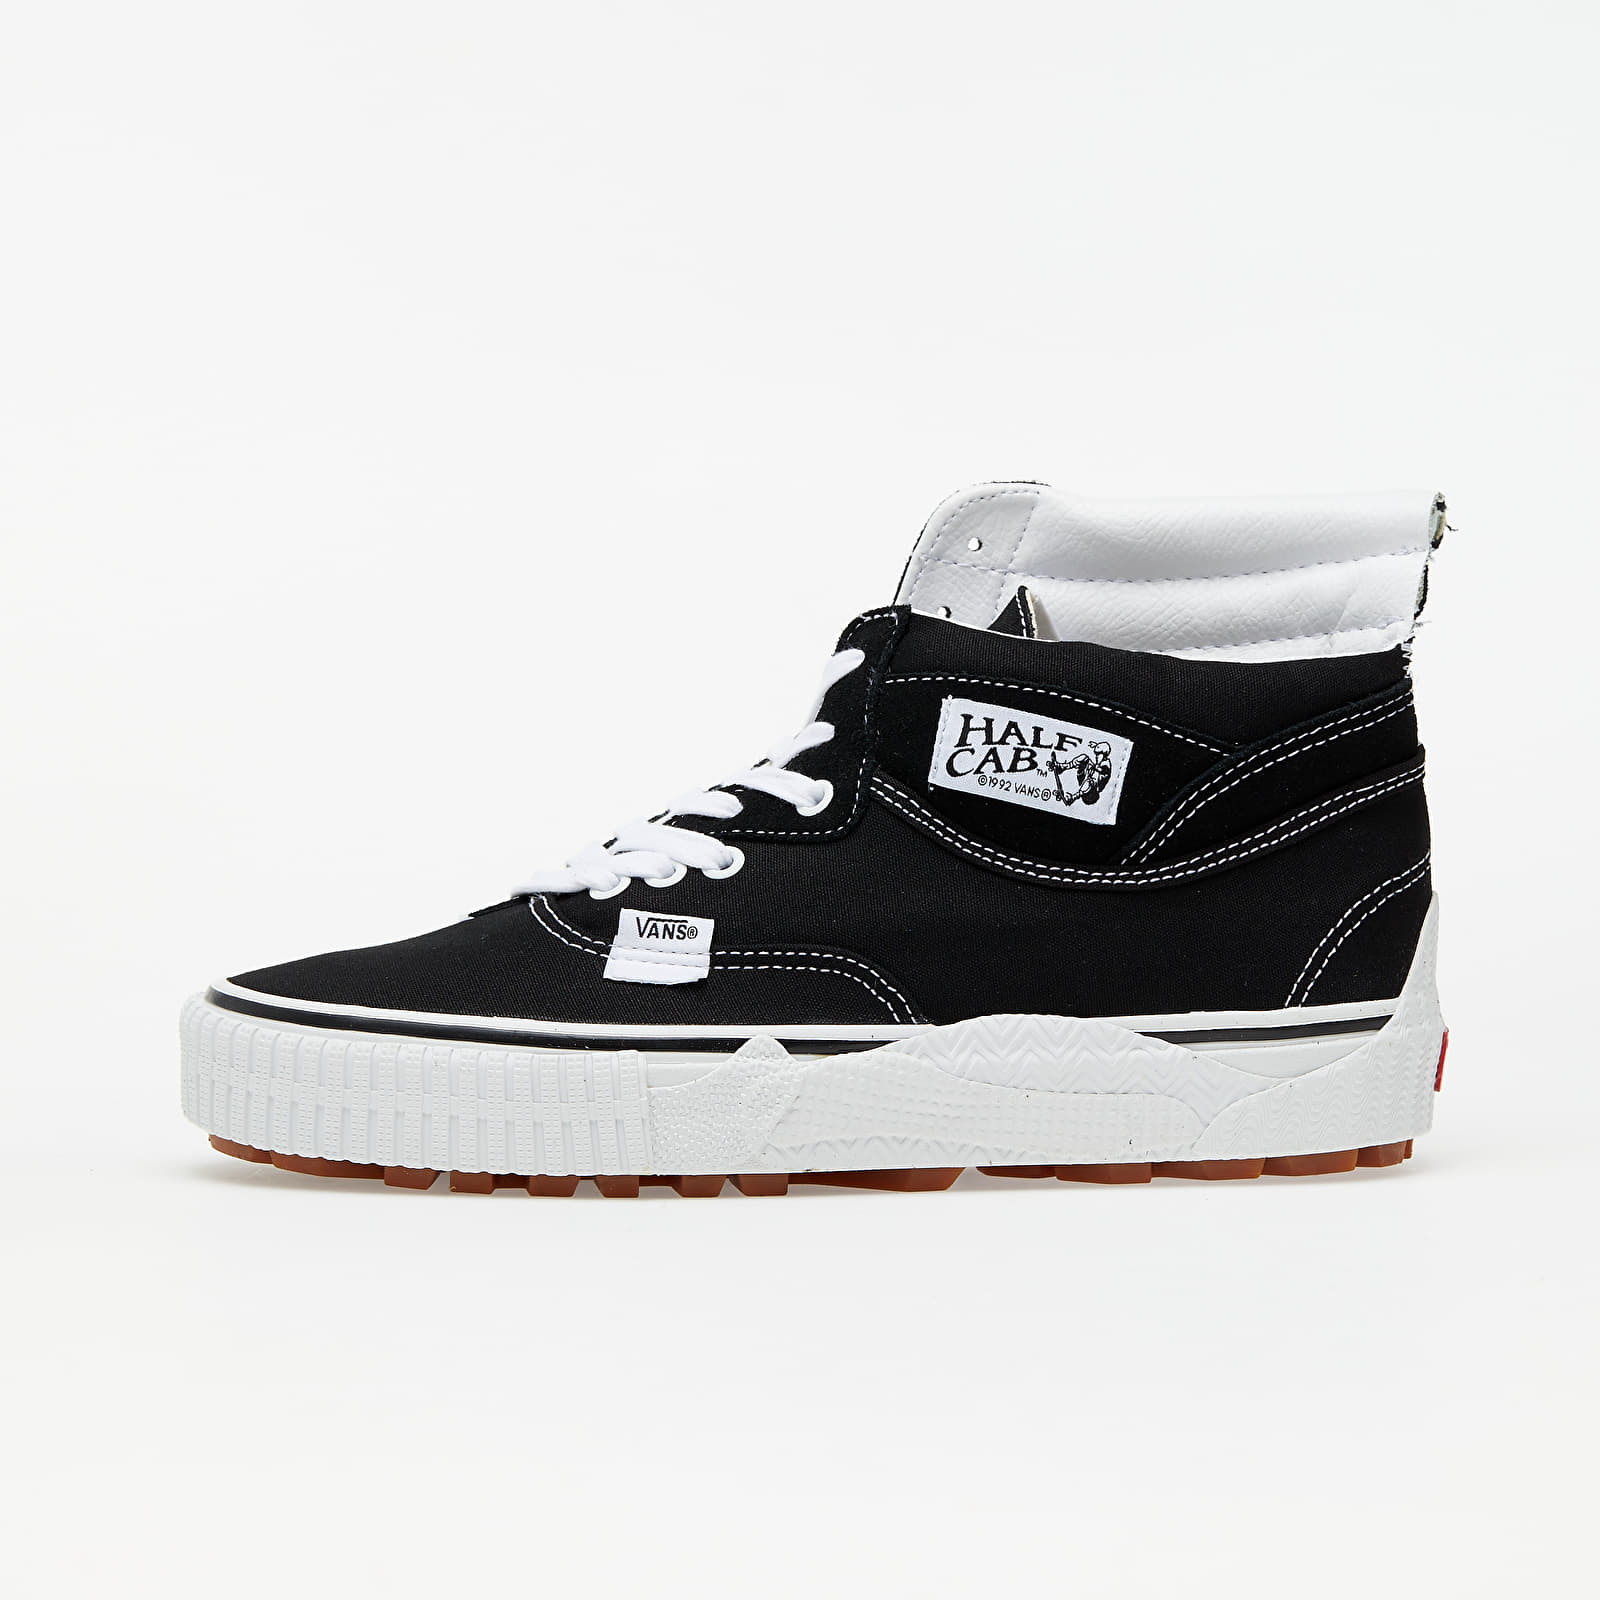 Мужская обувь Vans Cap Mash Hi LX (Suede/ Canvas) Black/ White